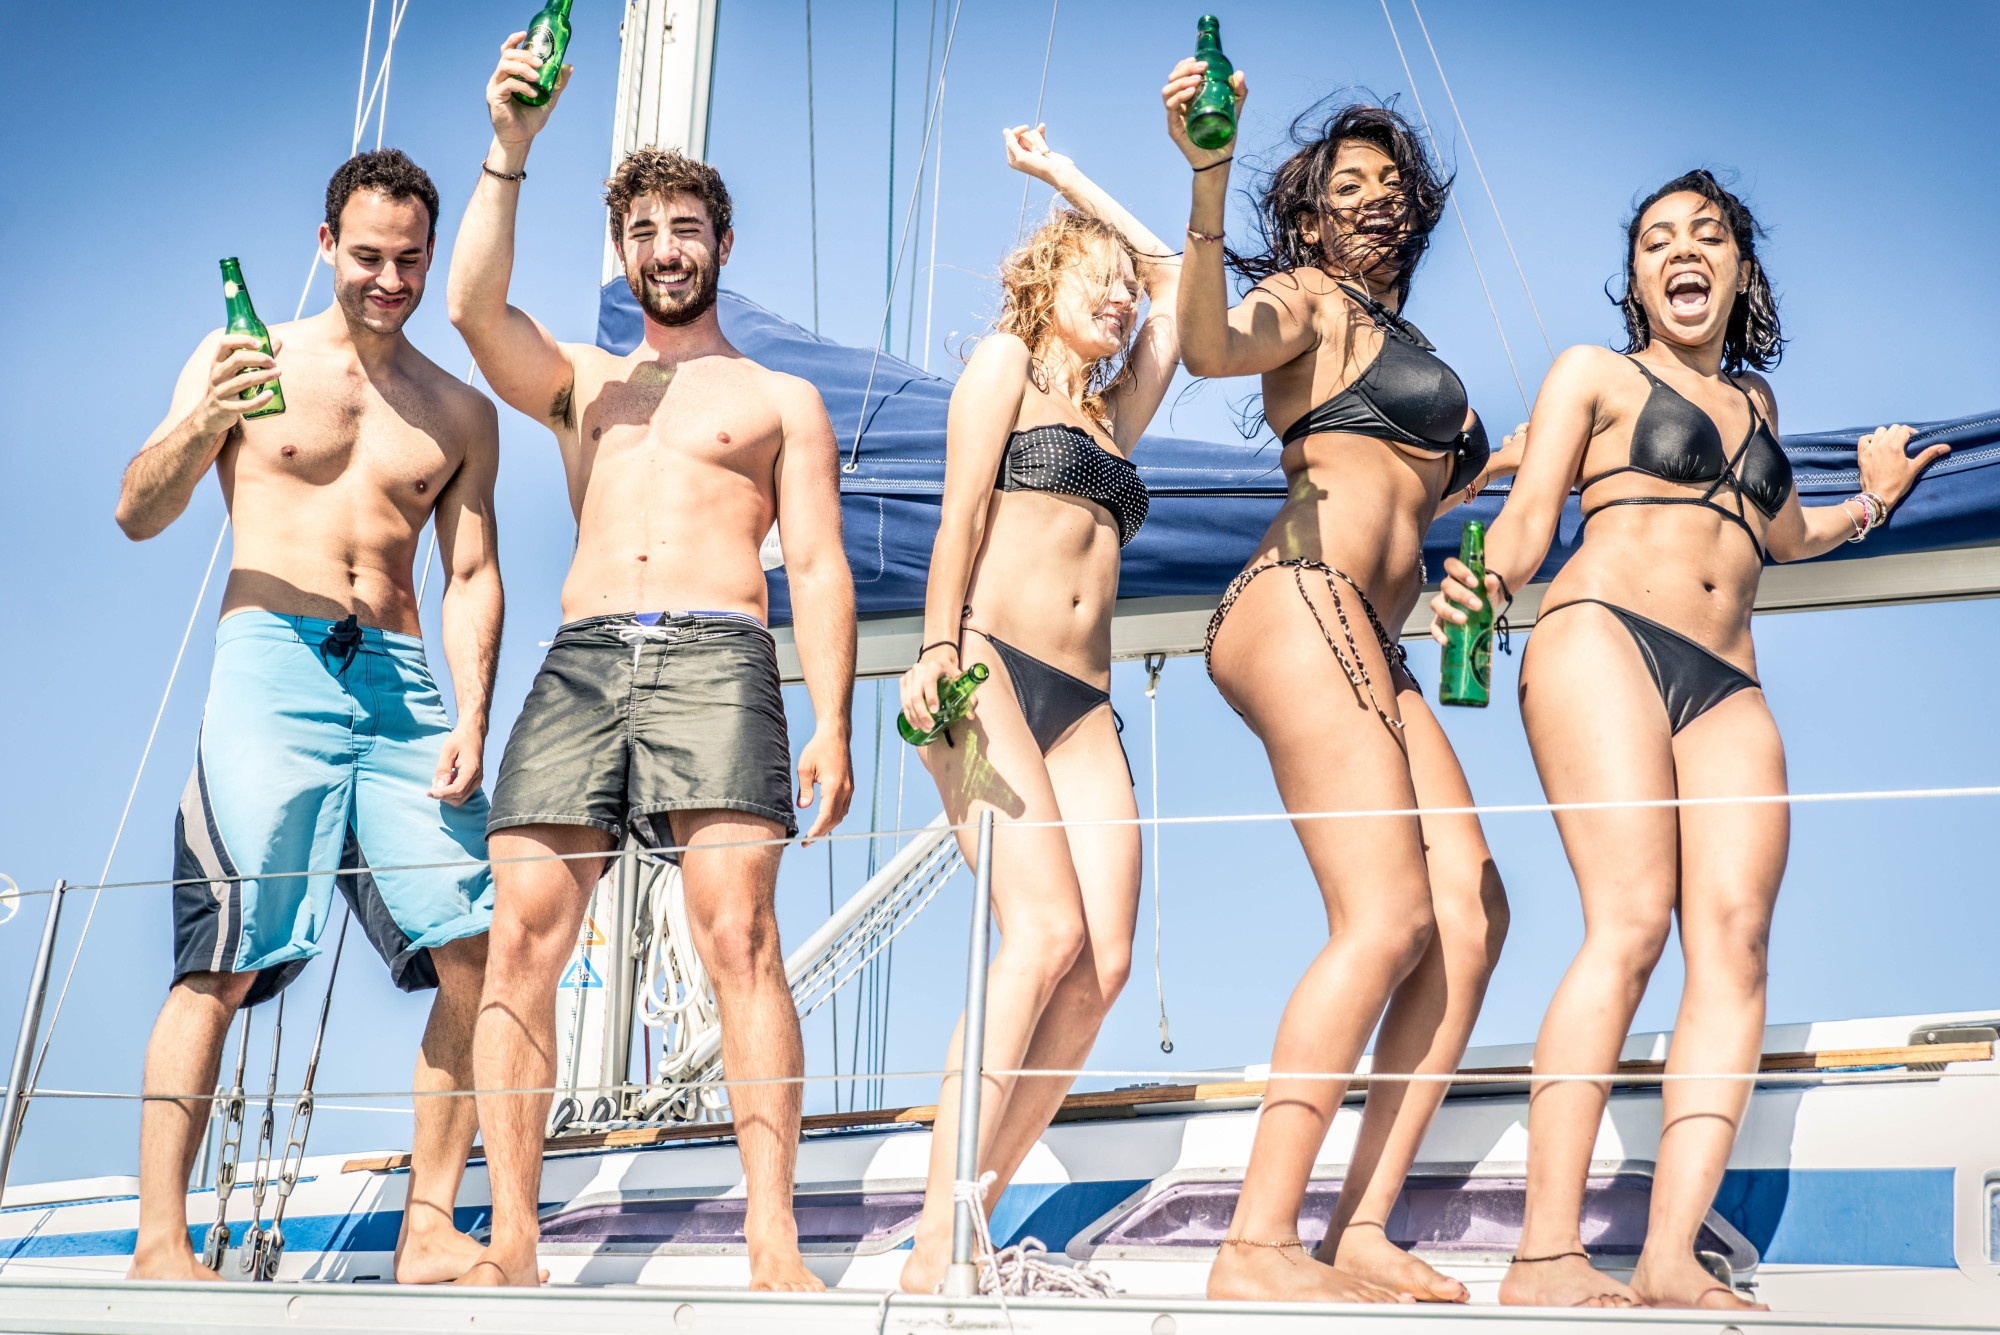 4 Healthy Drinking Tips When on a Booze Cruise